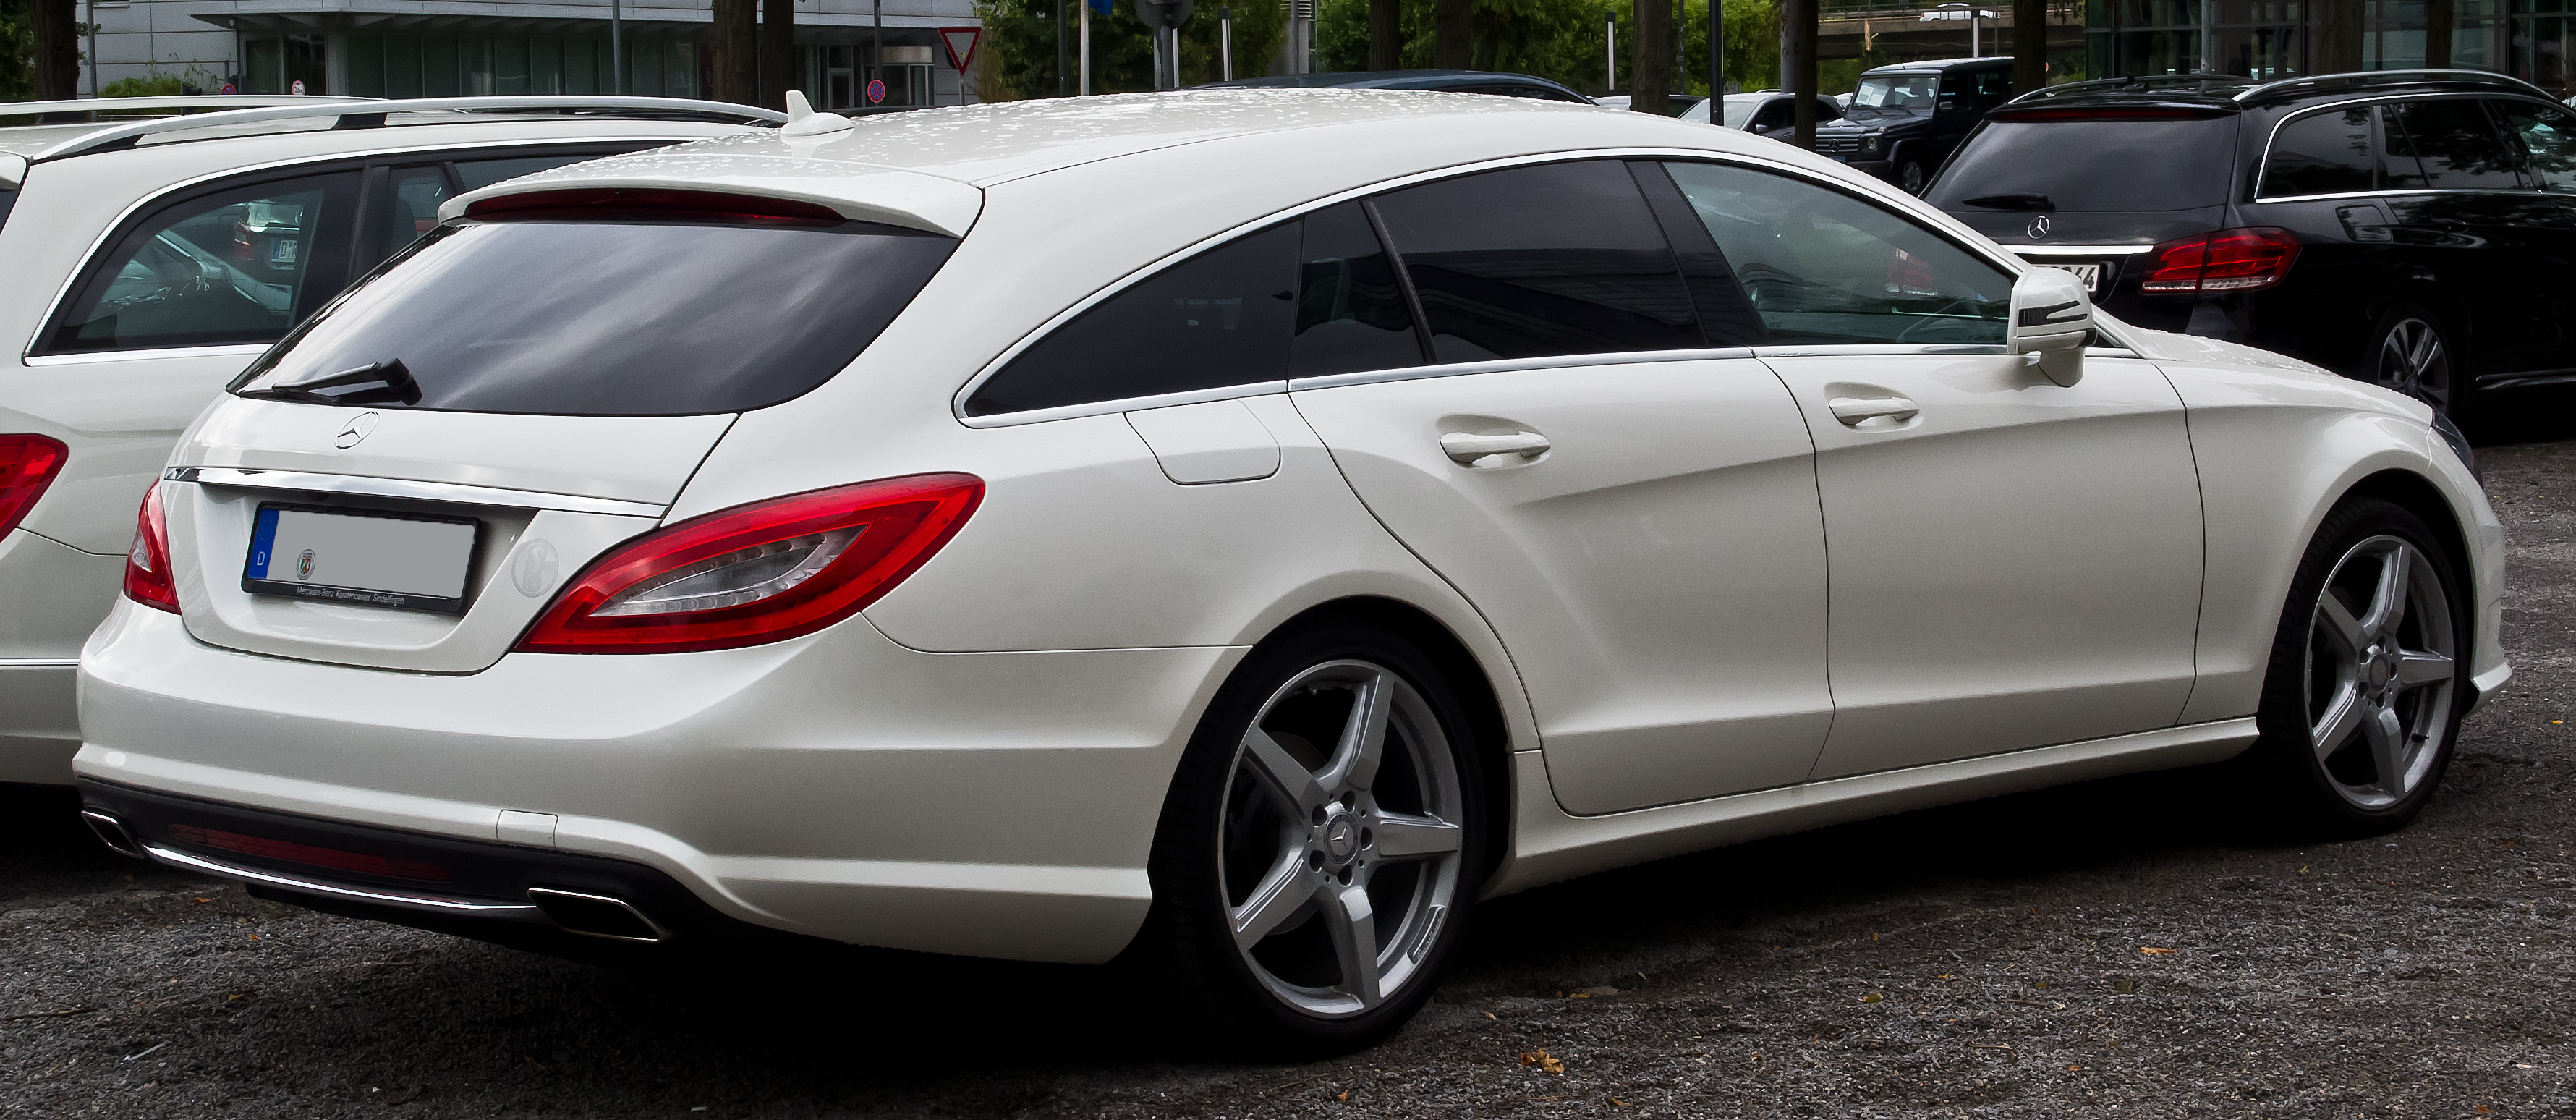 file mercedes benz cls 350 cdi shooting brake sport paket. Black Bedroom Furniture Sets. Home Design Ideas